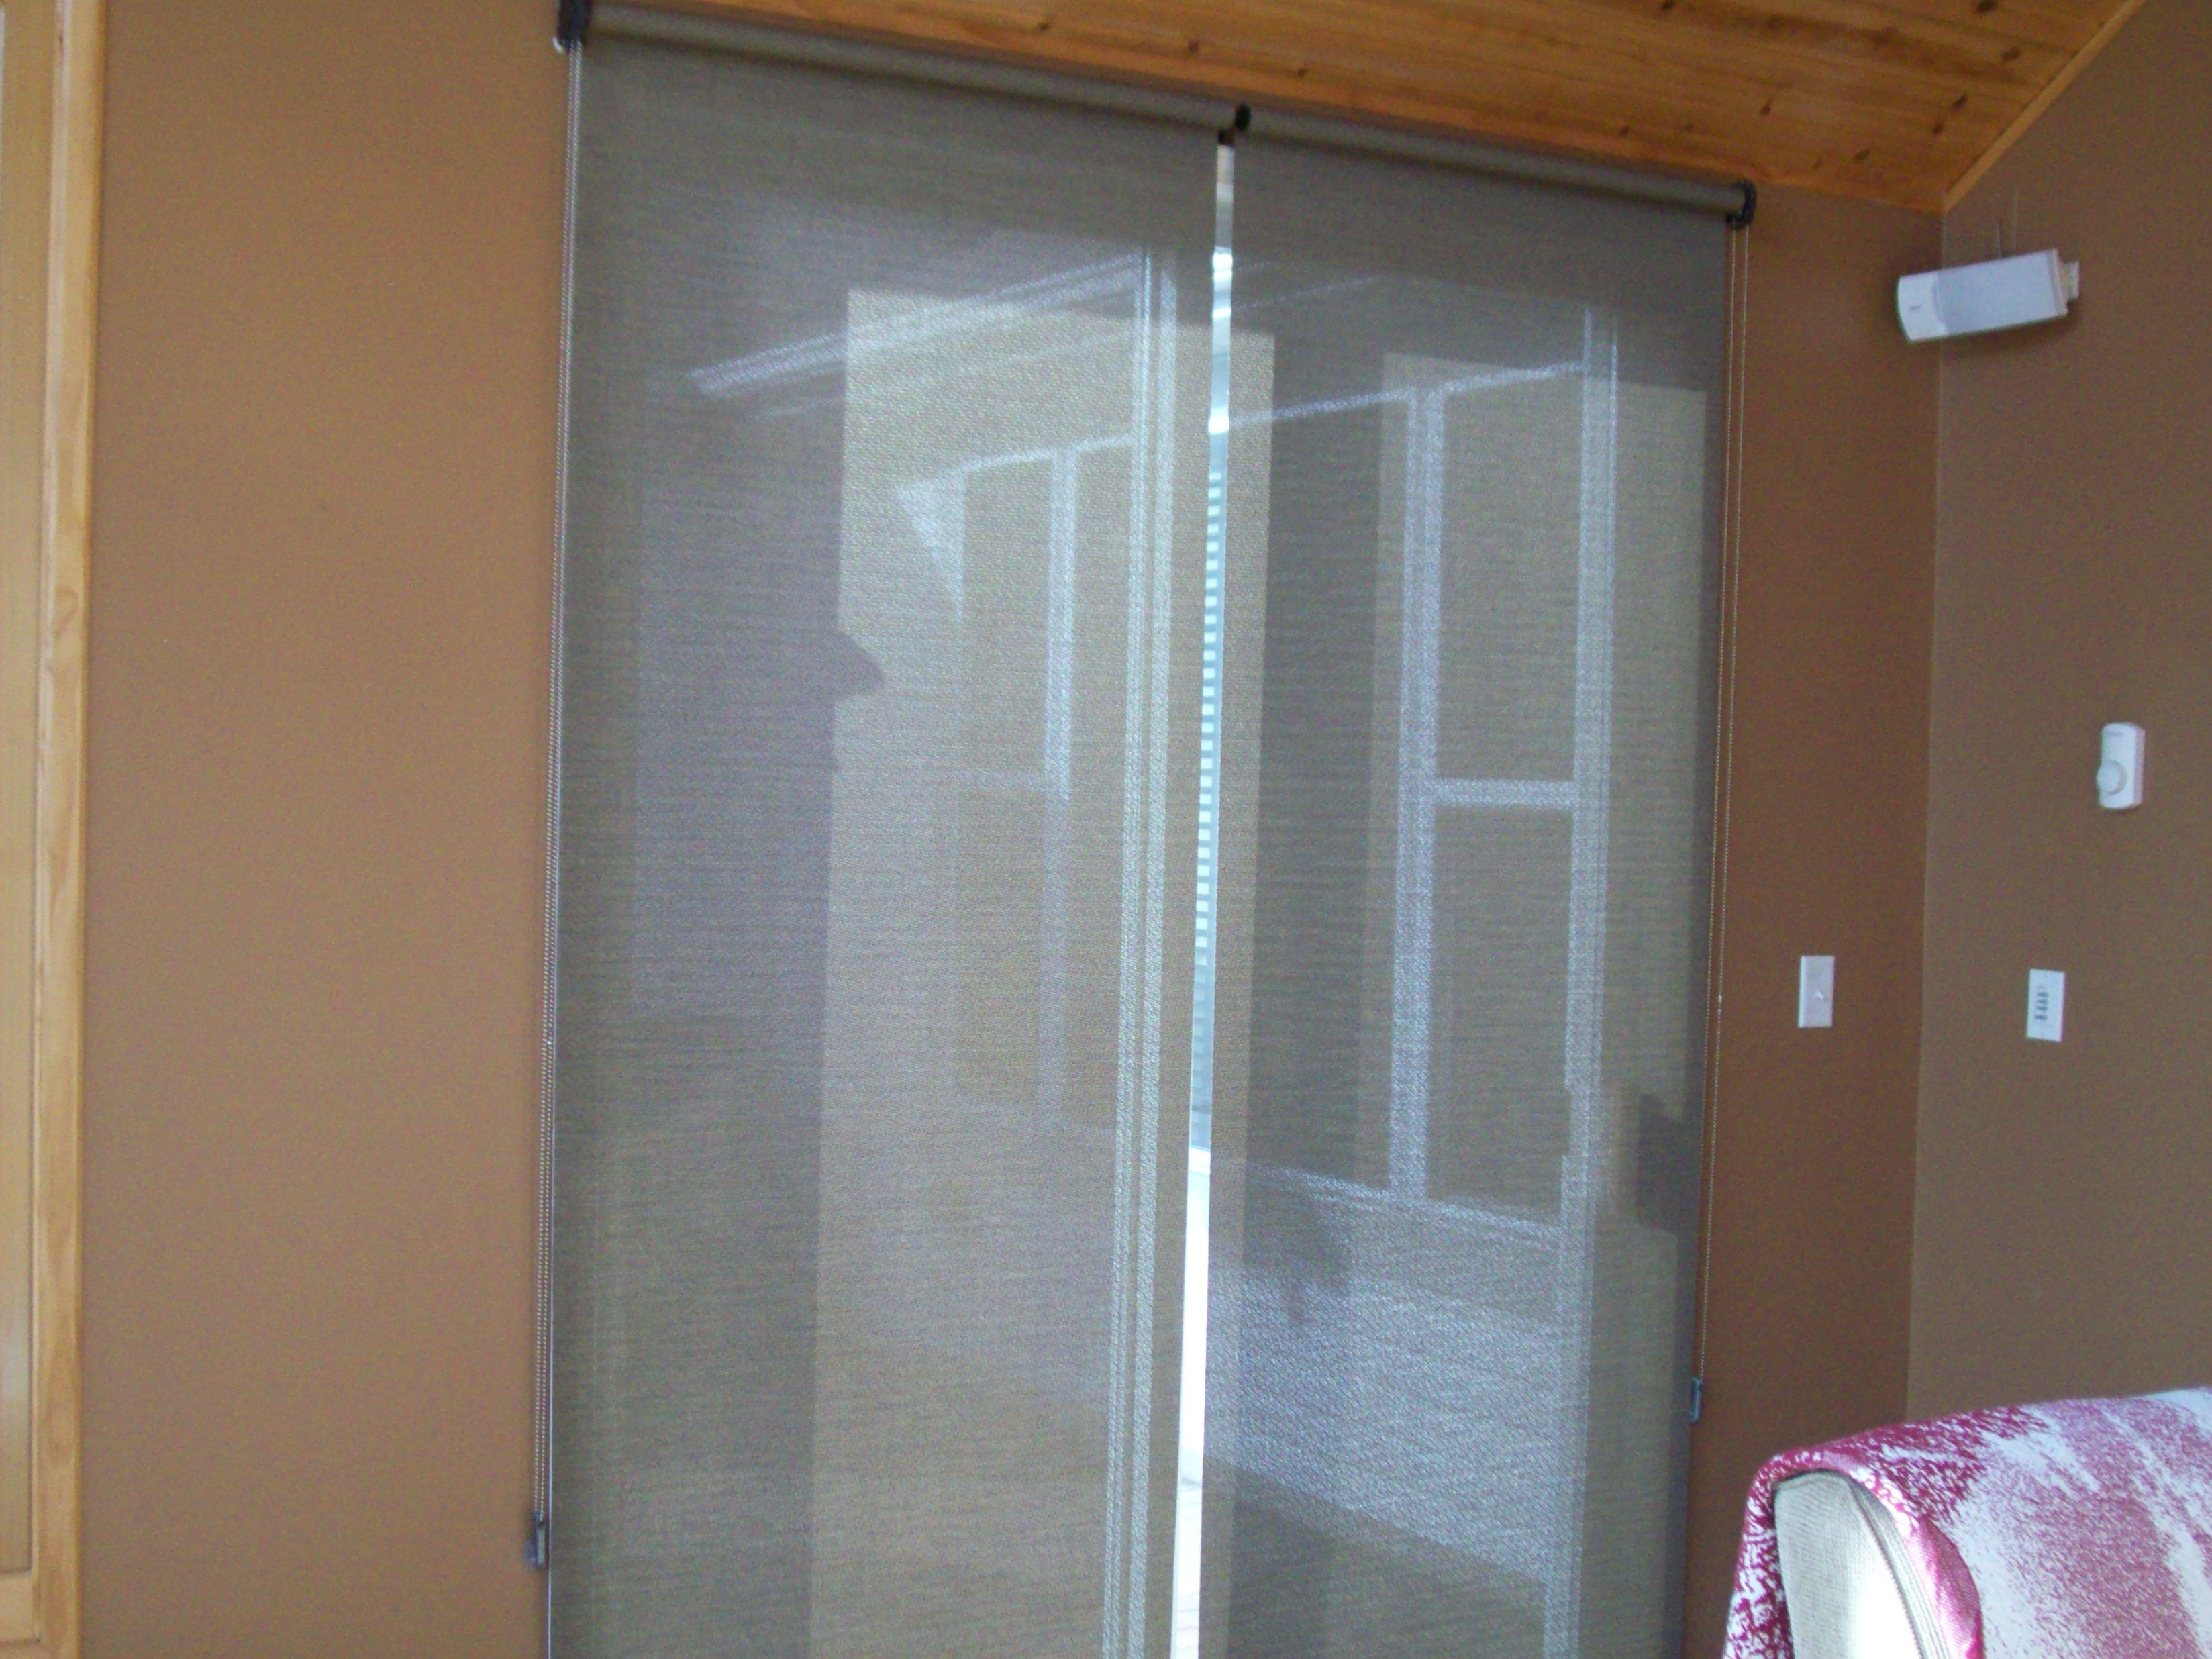 2 Sun Screen Shades Butting Together On A Patio Door